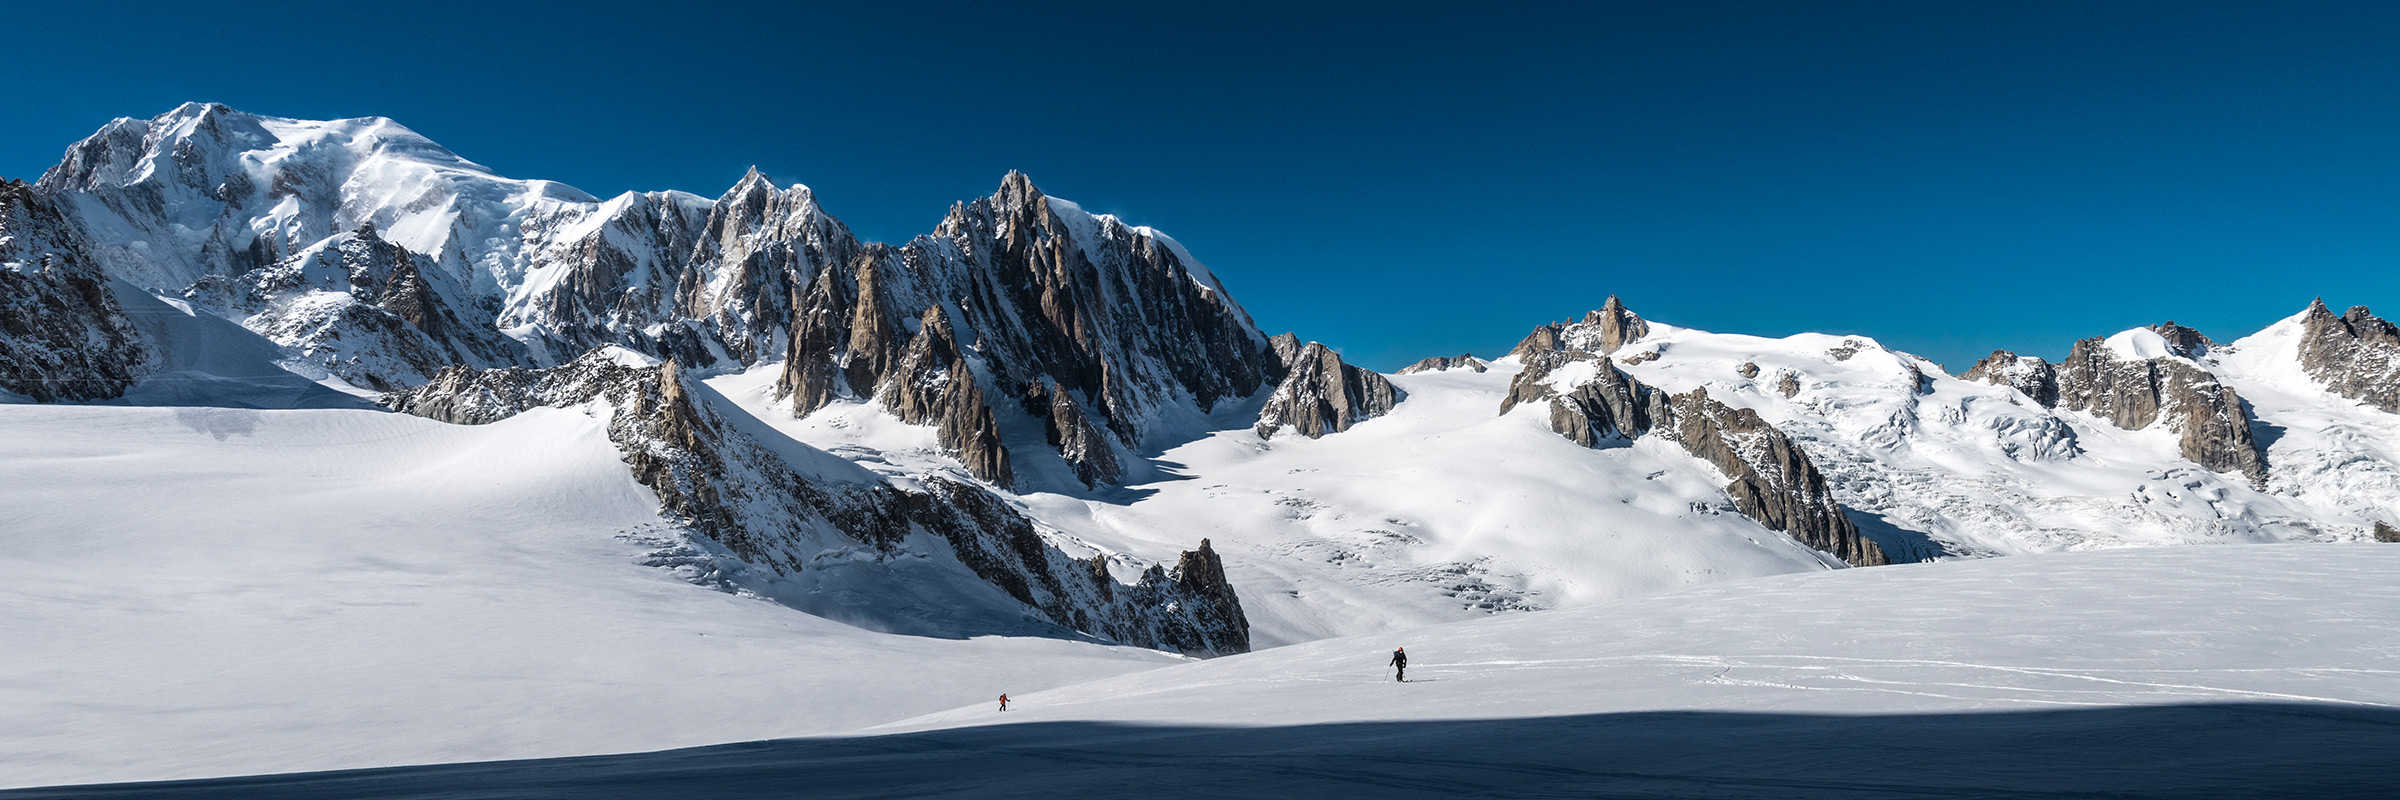 Mountain Hardwear: Into the Backcountry with the CloudSeeker™ Collection